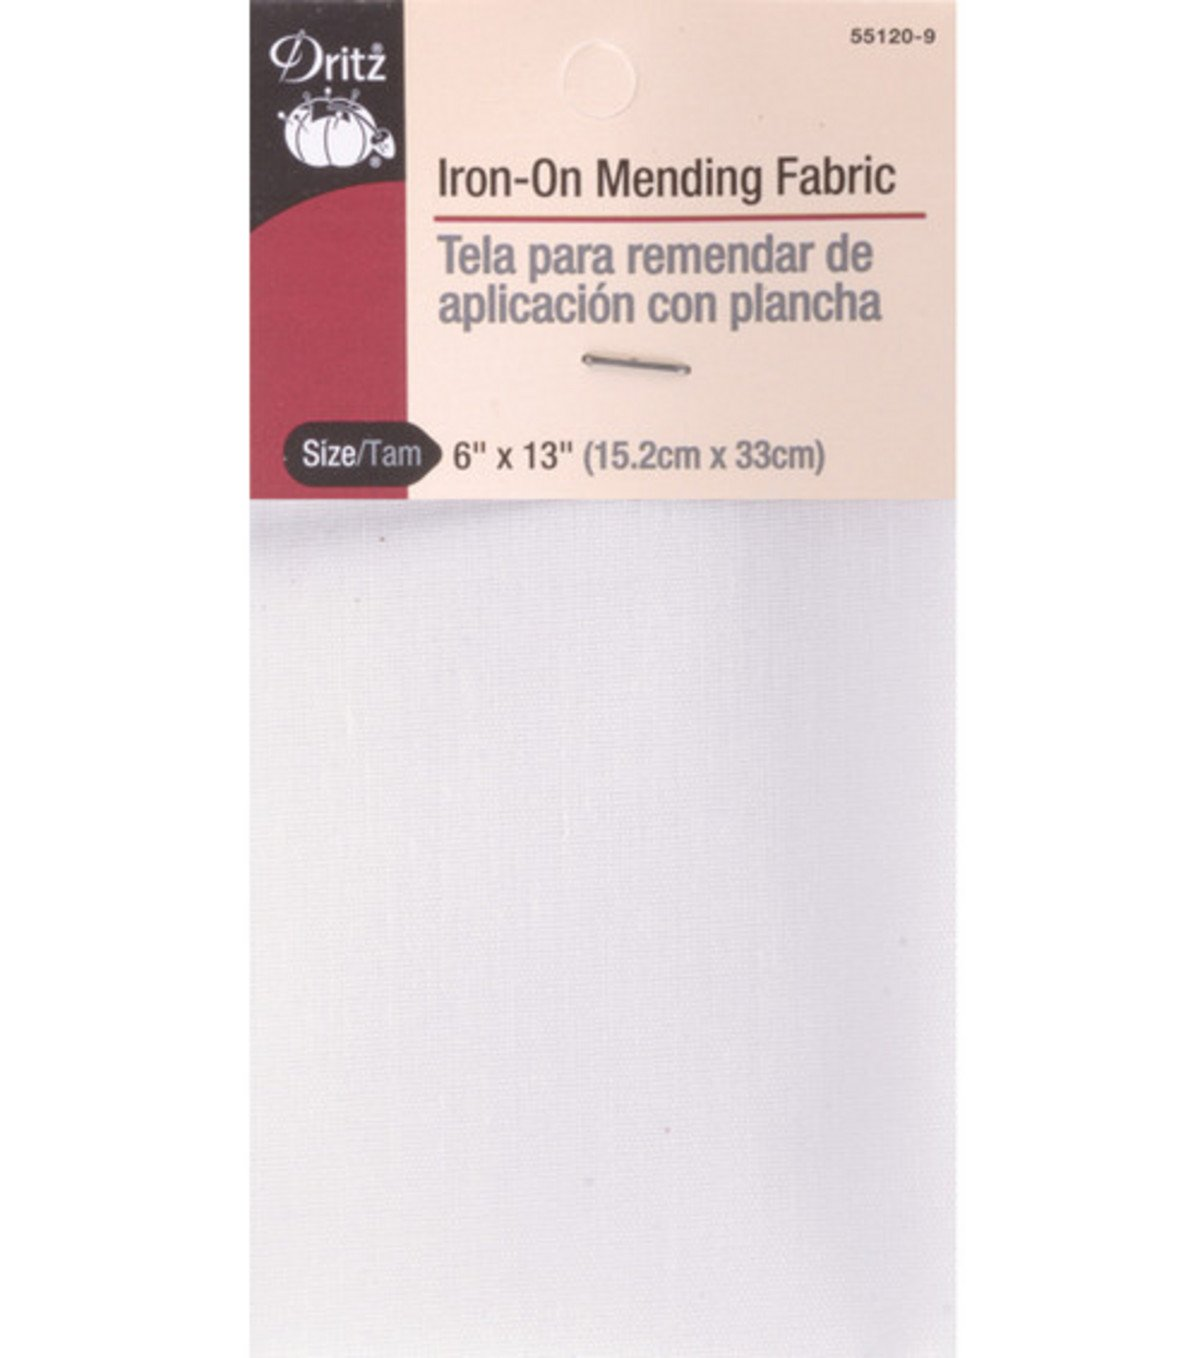 Dritz 55120-9 Iron-On Mending Fabric, White, 6 by 13-Inch (2 Pack)